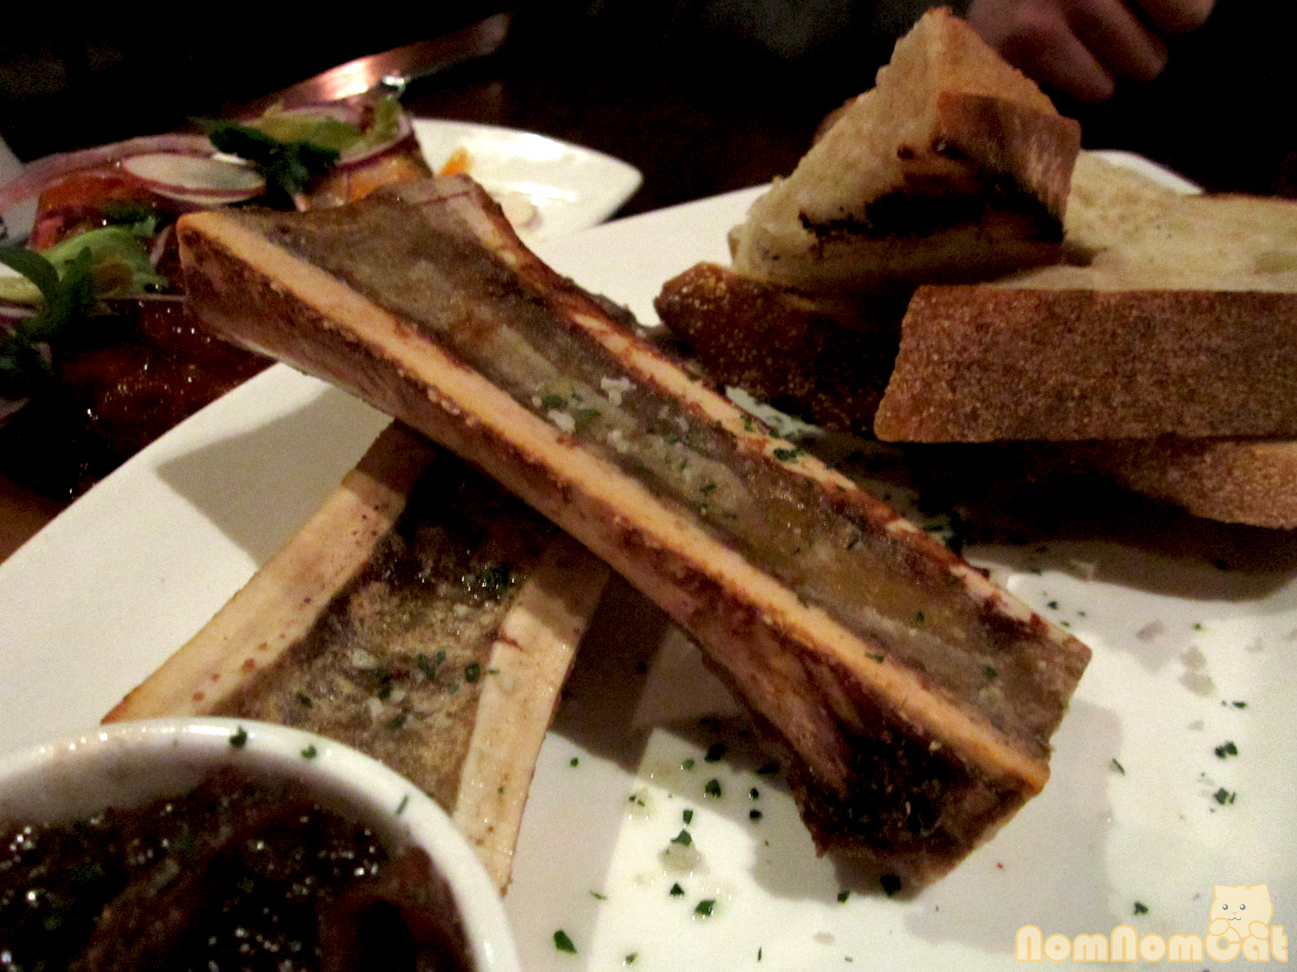 Roasted Bone Marrow – bacon marmalade, grilled bread